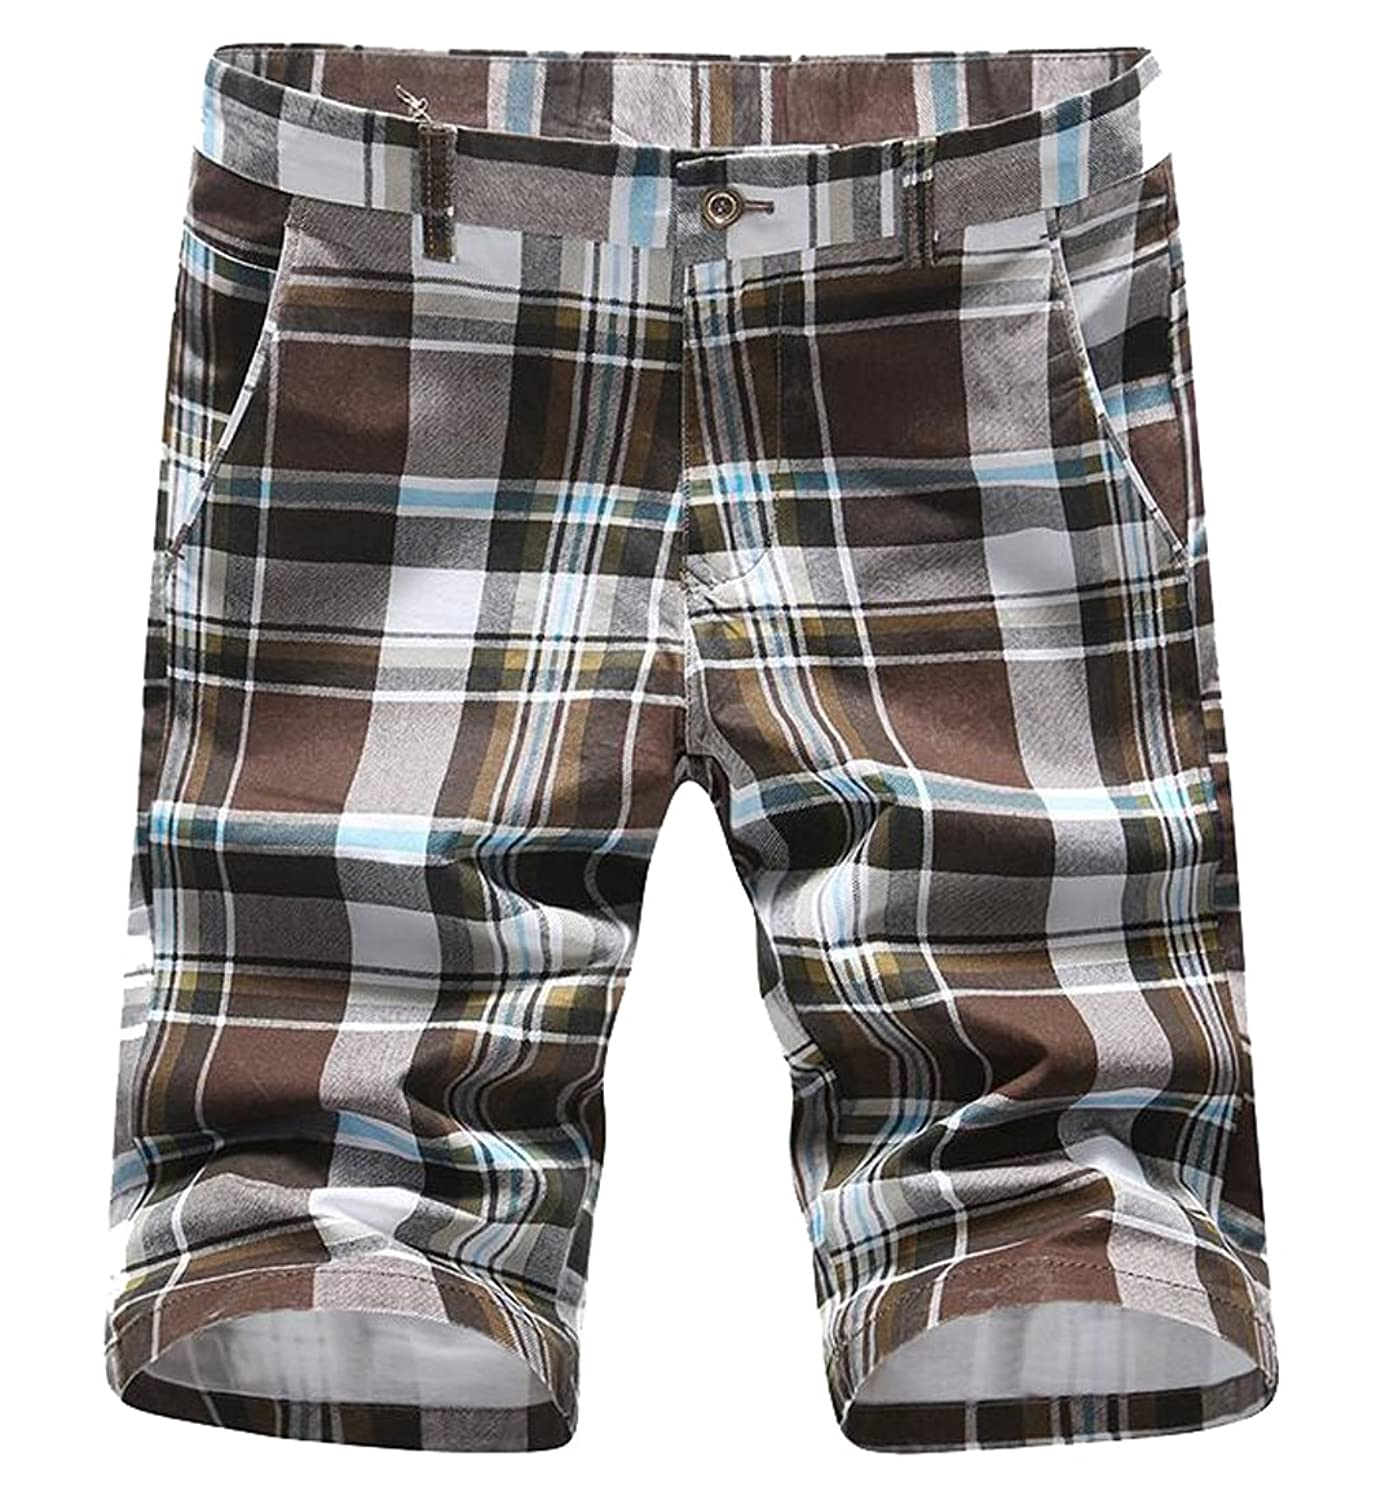 a54905d207 MLG Mens Plaid Casual Shorts Surfing Swim Trunks free shipping ...